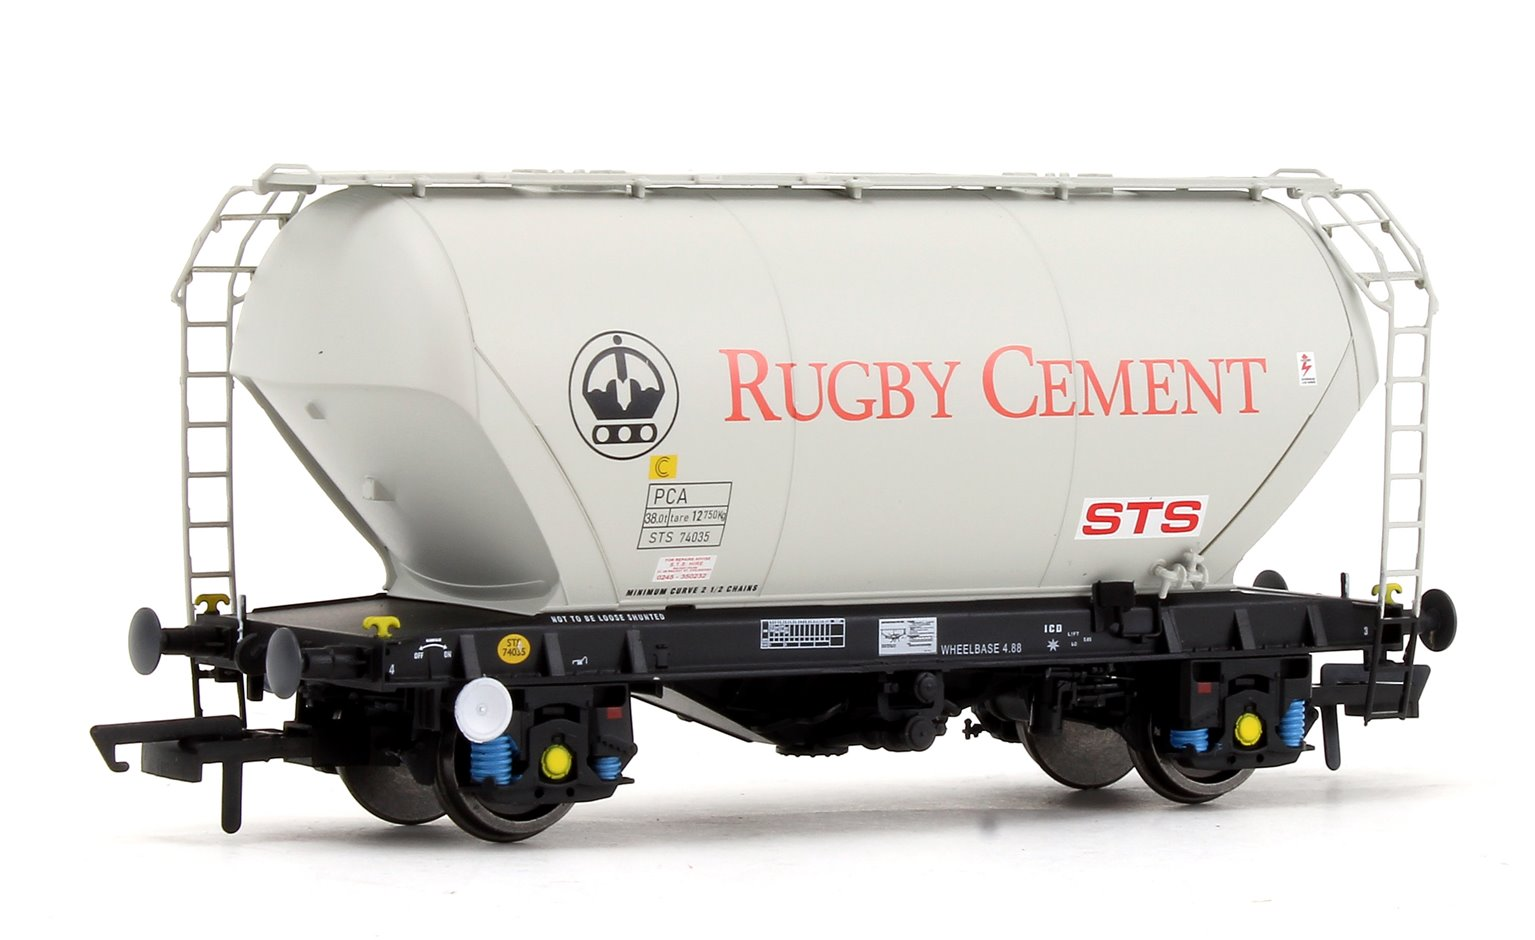 PCA Bulk Cement - Rugby Cement Pack E